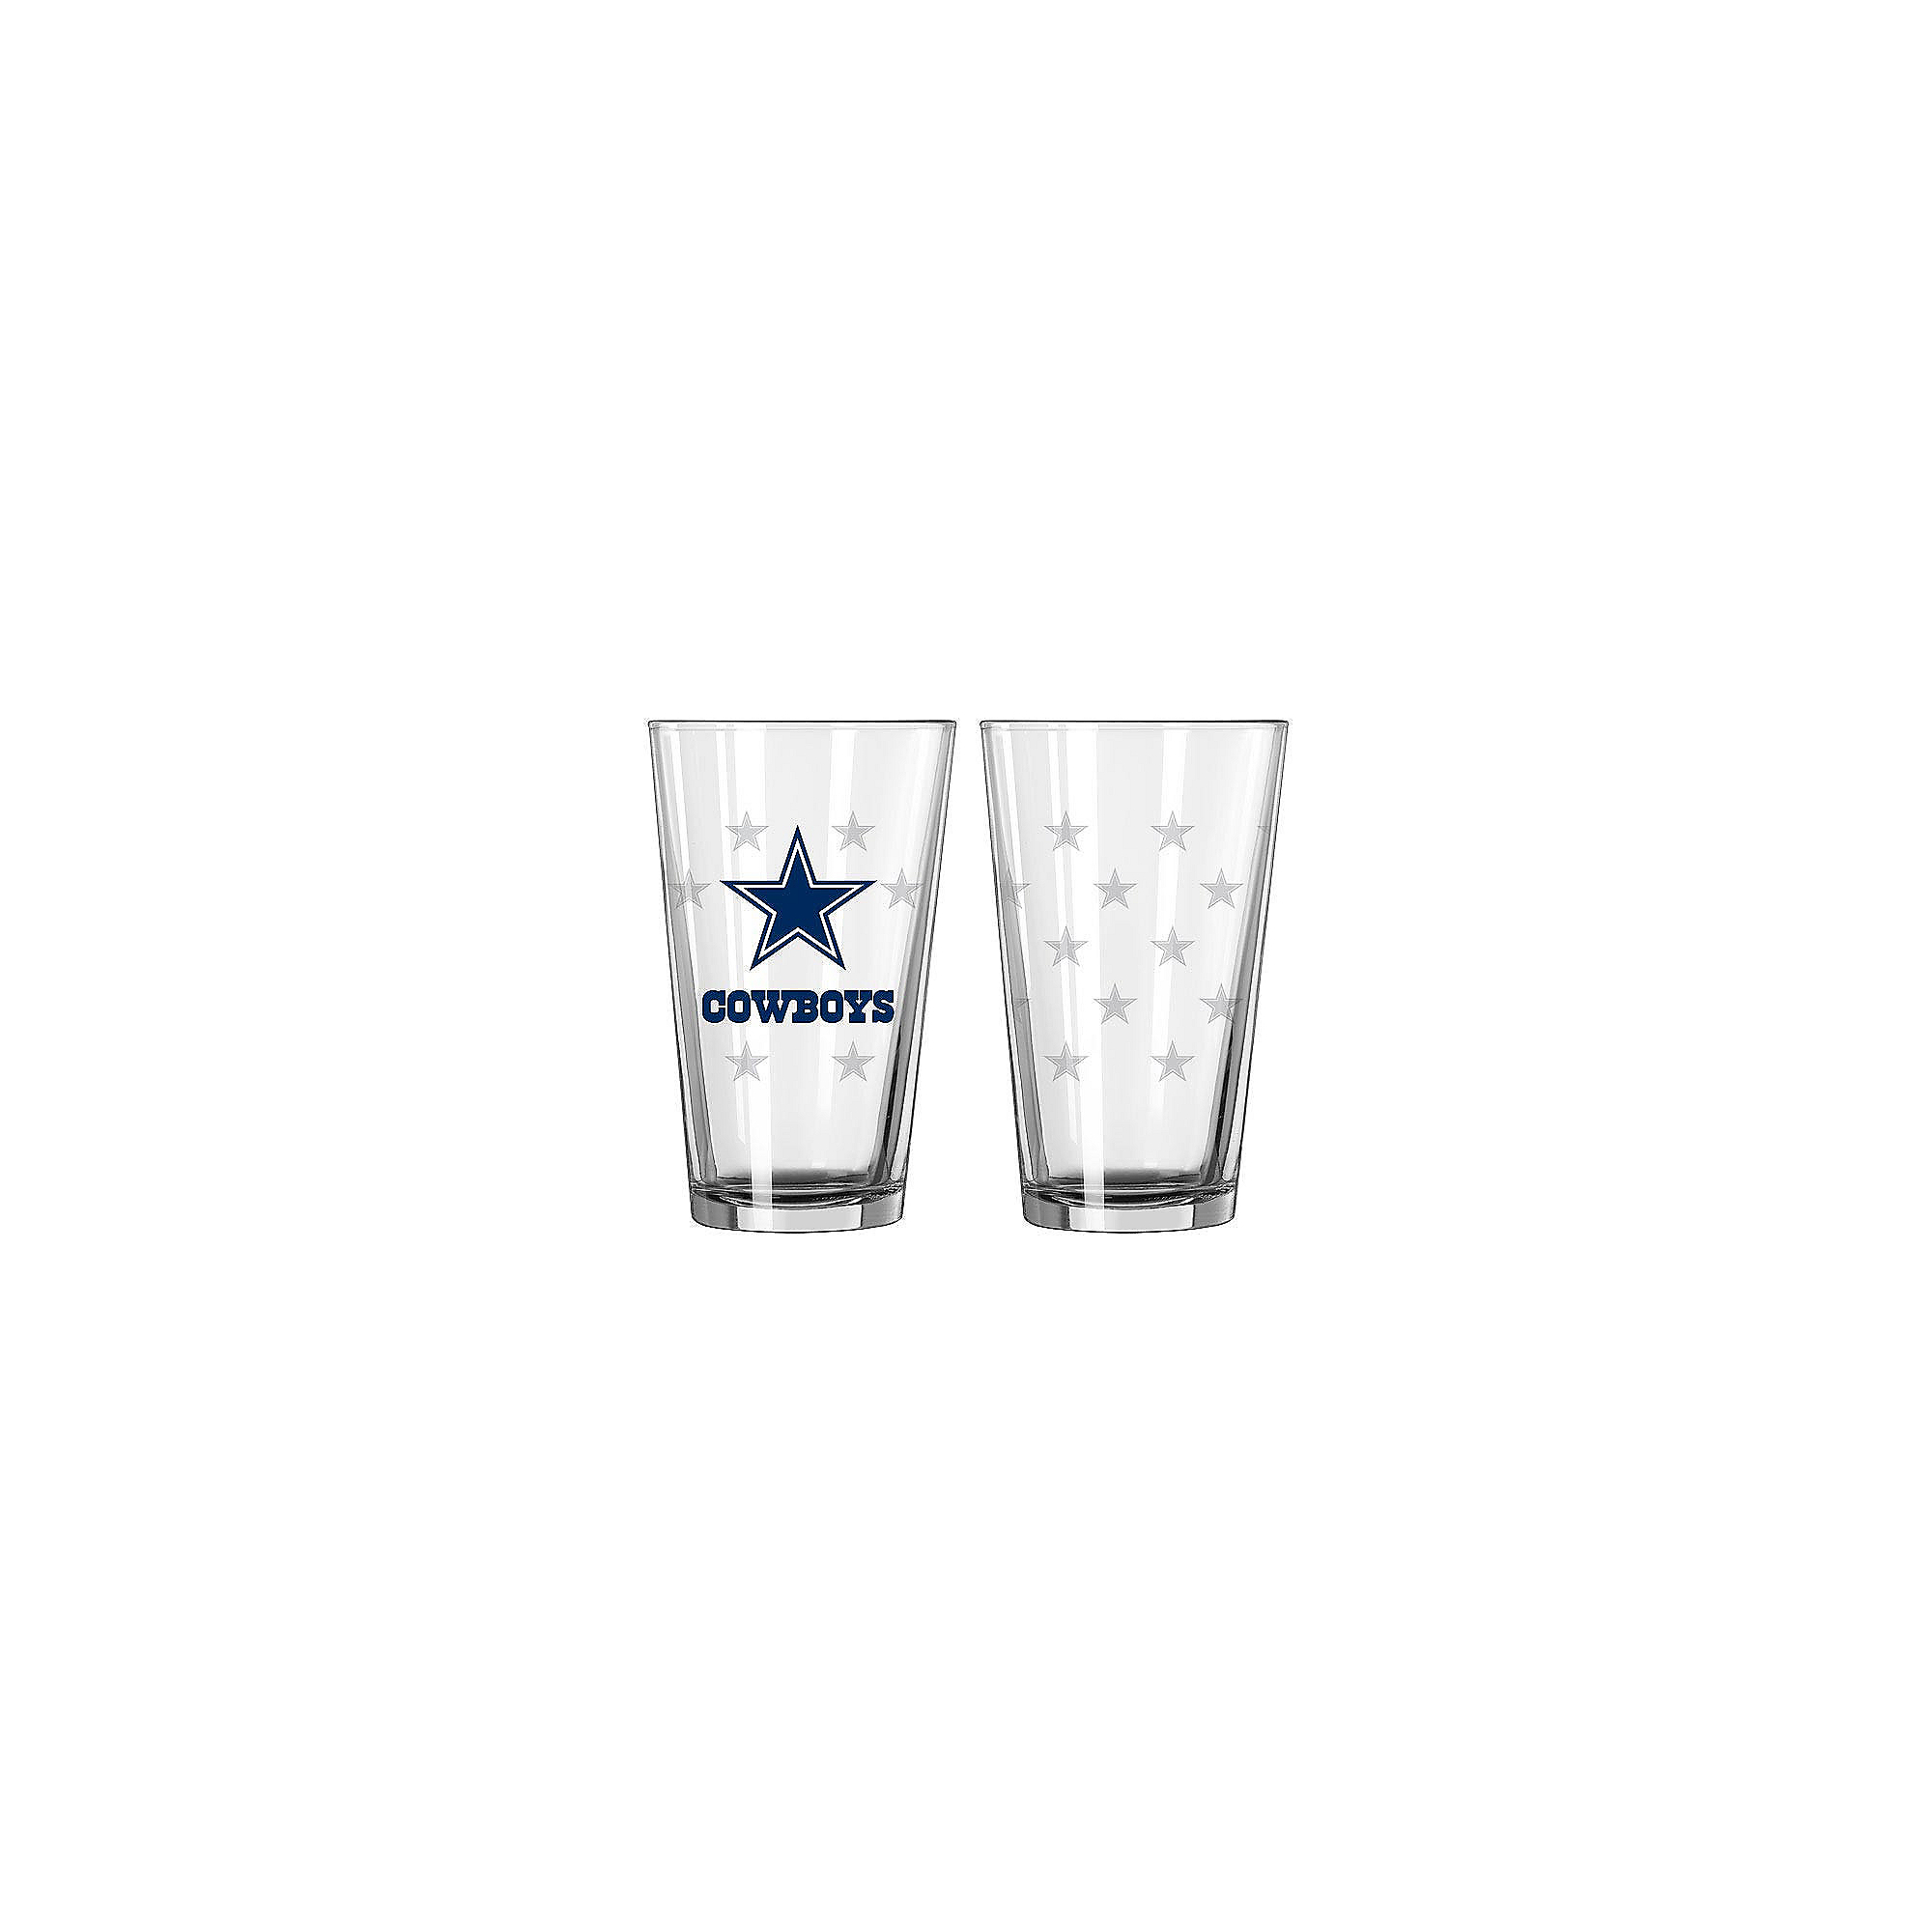 bb7b4dfbb486 Dallas Cowboys 16oz. Satin Etch Spray Pint Glass | Dallas Cowboys ...